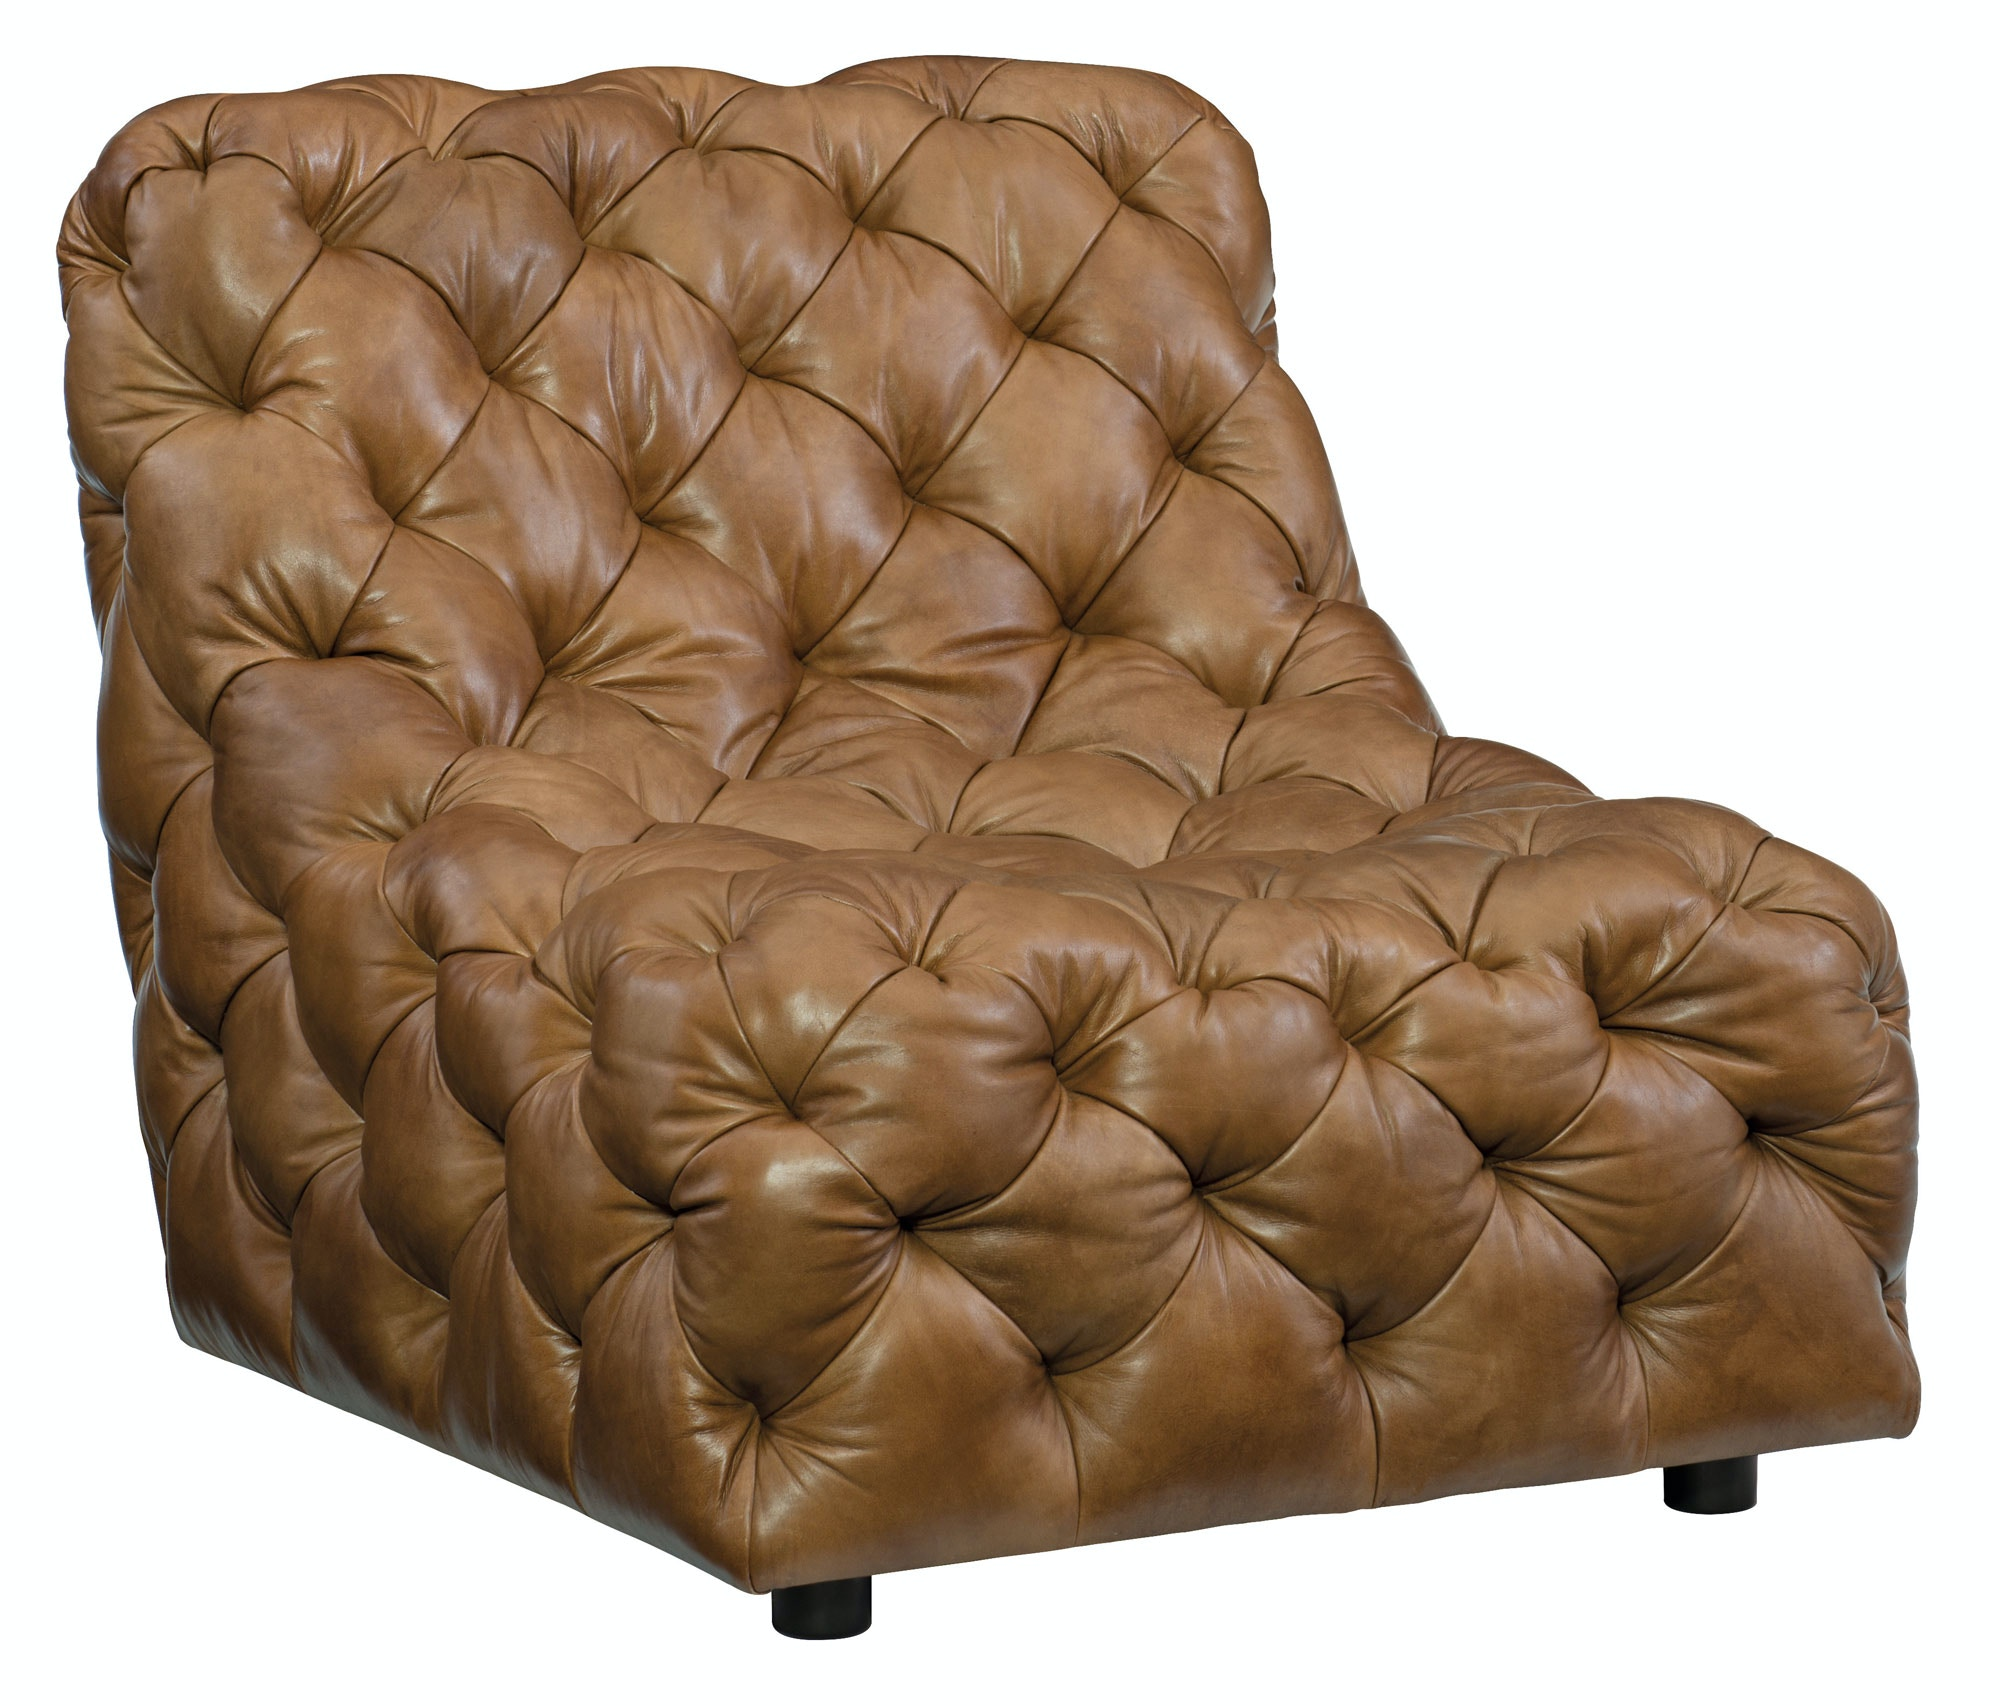 Bernhardt Leather Sofa Good Princeton Top Grain Leather Sofa In A